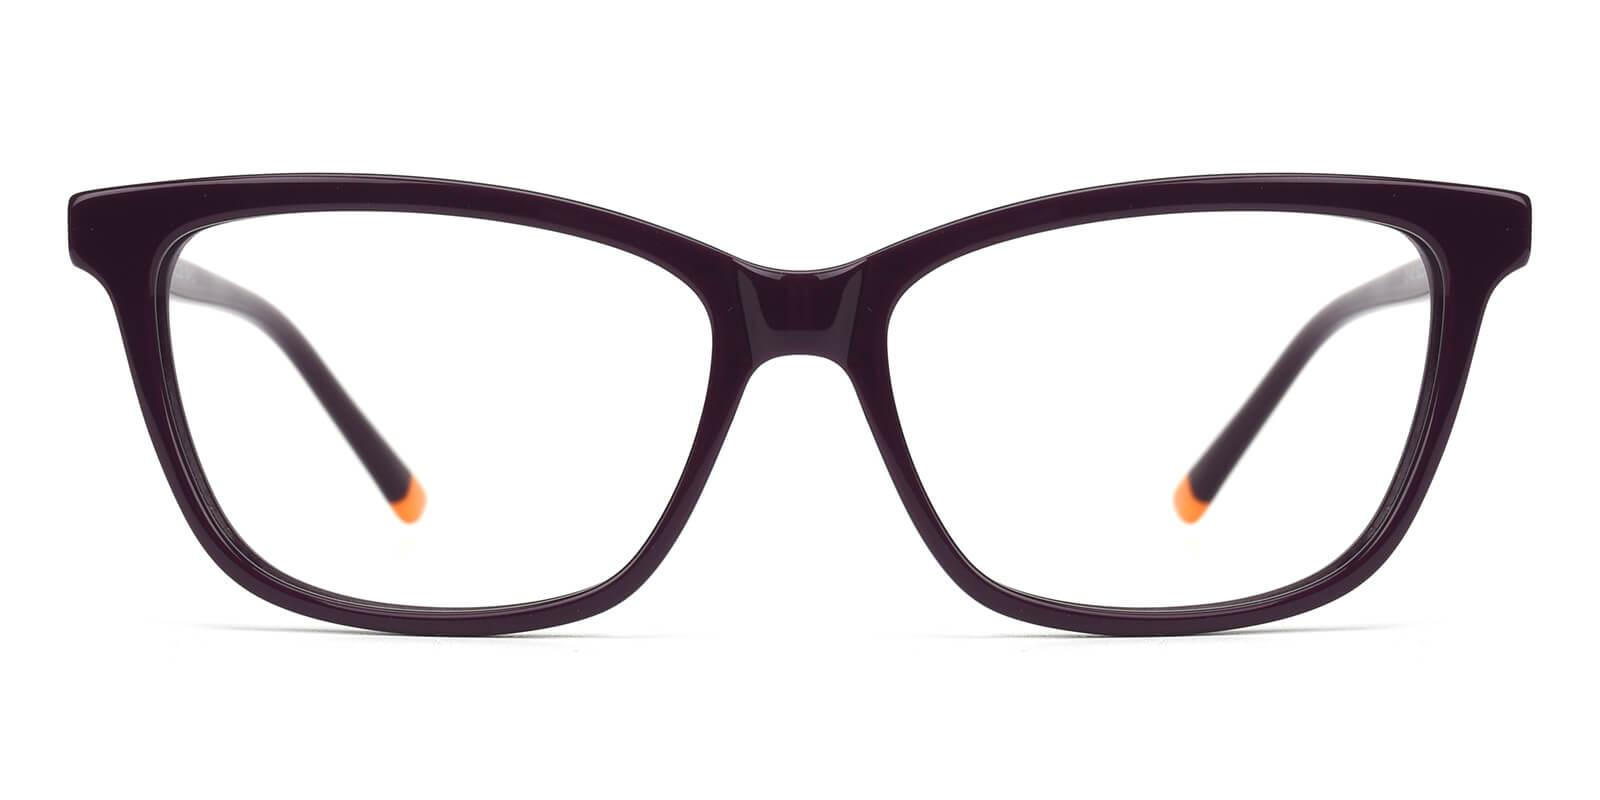 Clowdia-Purple-Square / Cat-Acetate-Eyeglasses-additional2